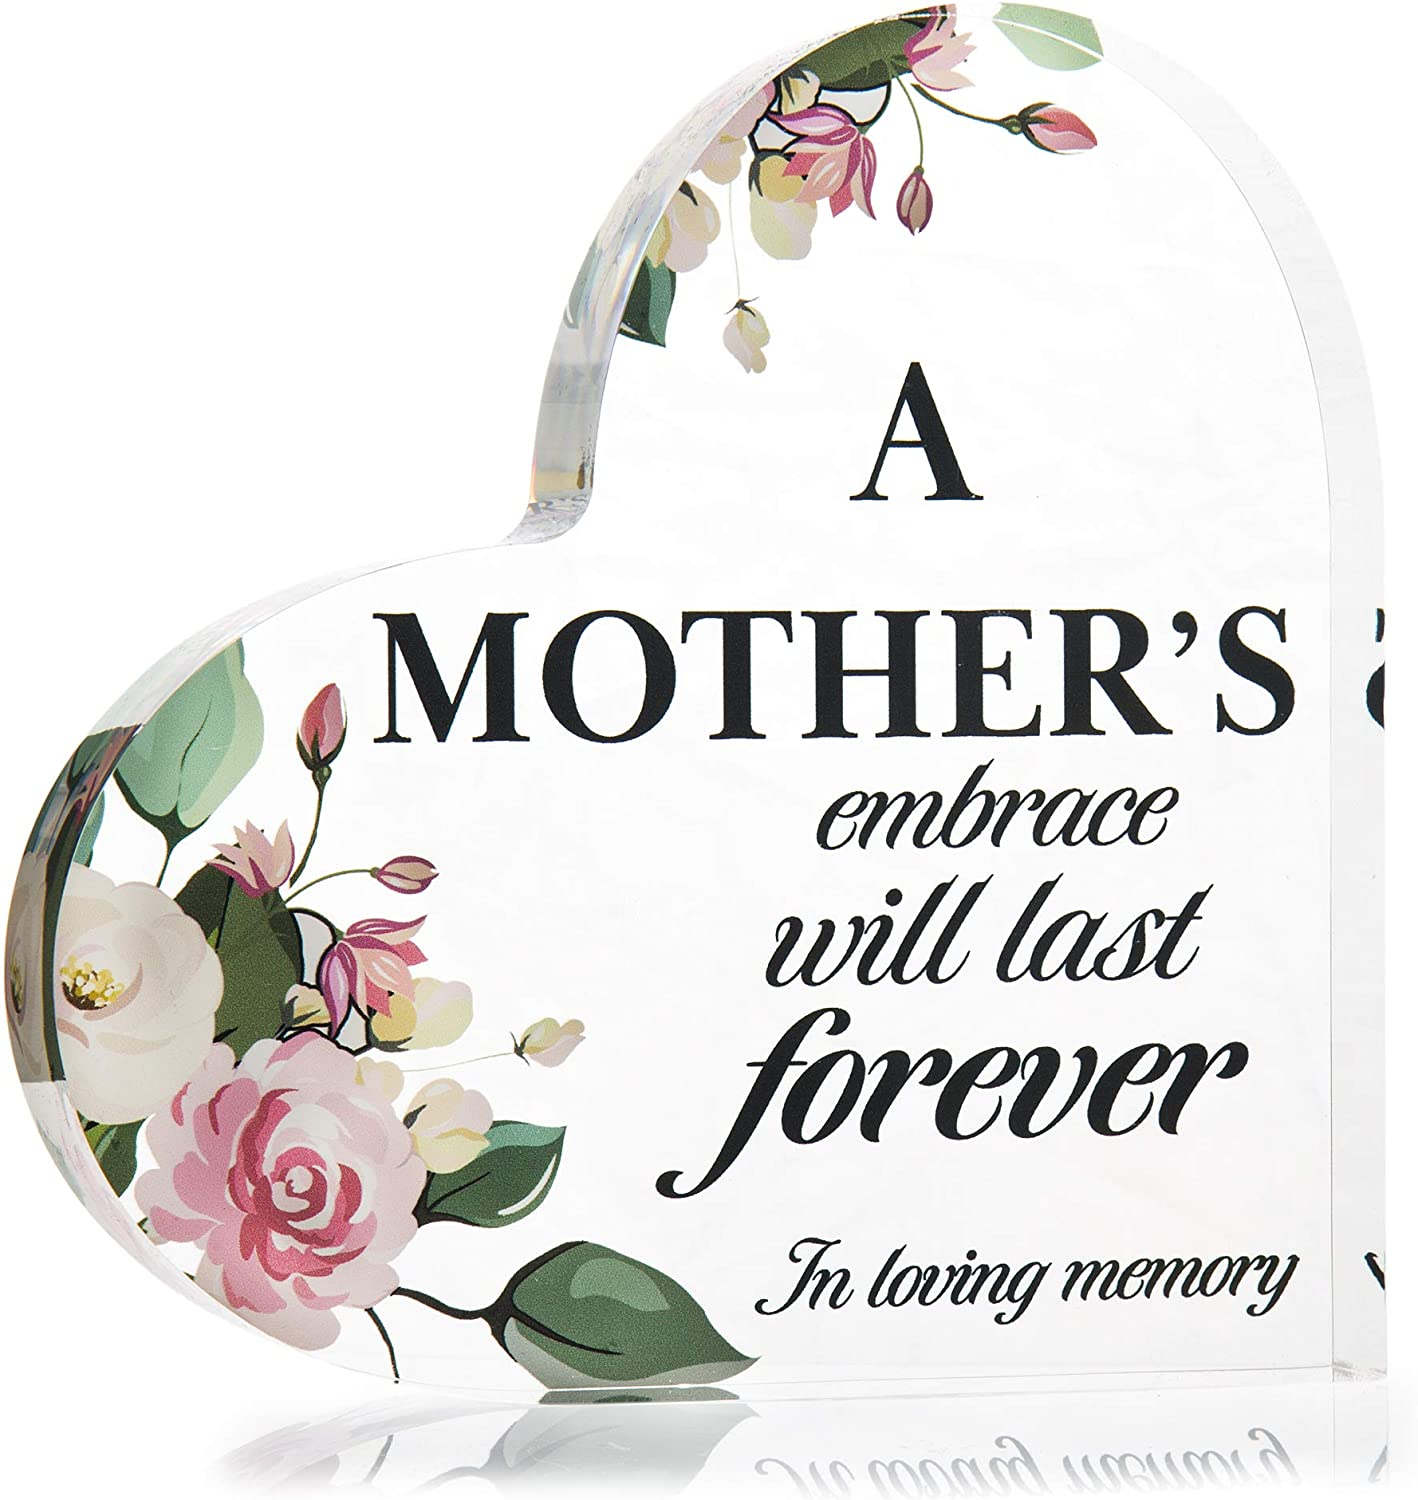 Loss of Mother Memorial gift Mom In memory of Mom sign Remembrance gift Bereavement gift Sympathy gift Memorial sign Loss of loved one gift